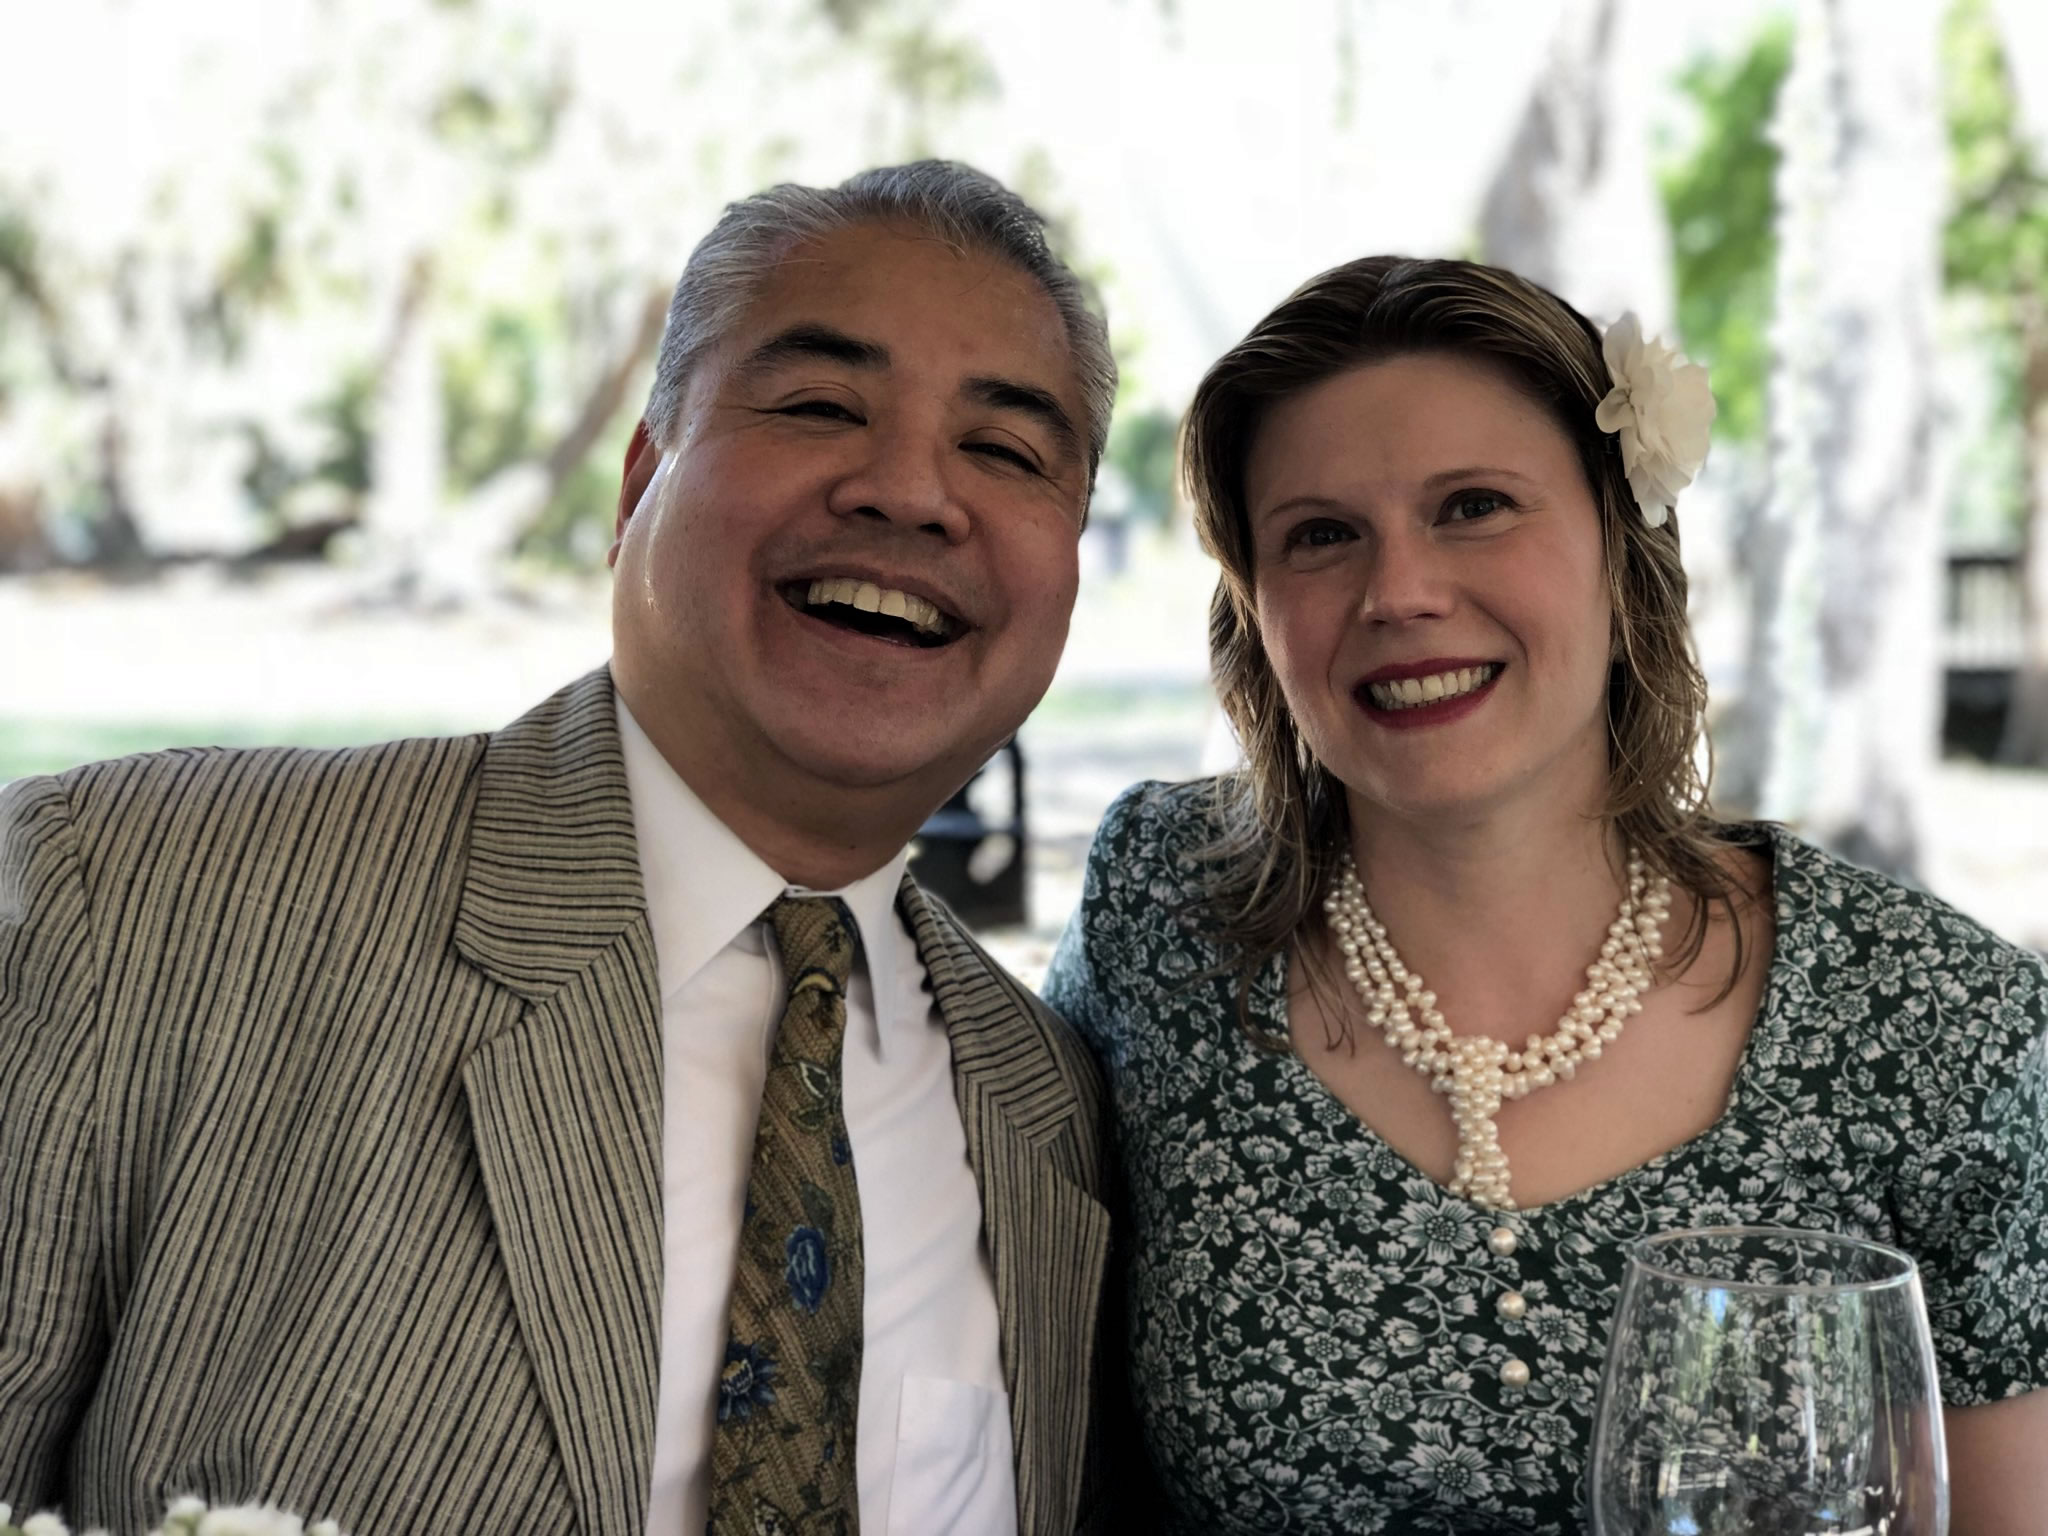 Joey deVilla in a suit and tie, smiling with Anitra Pavka in a floral dress and pearls.